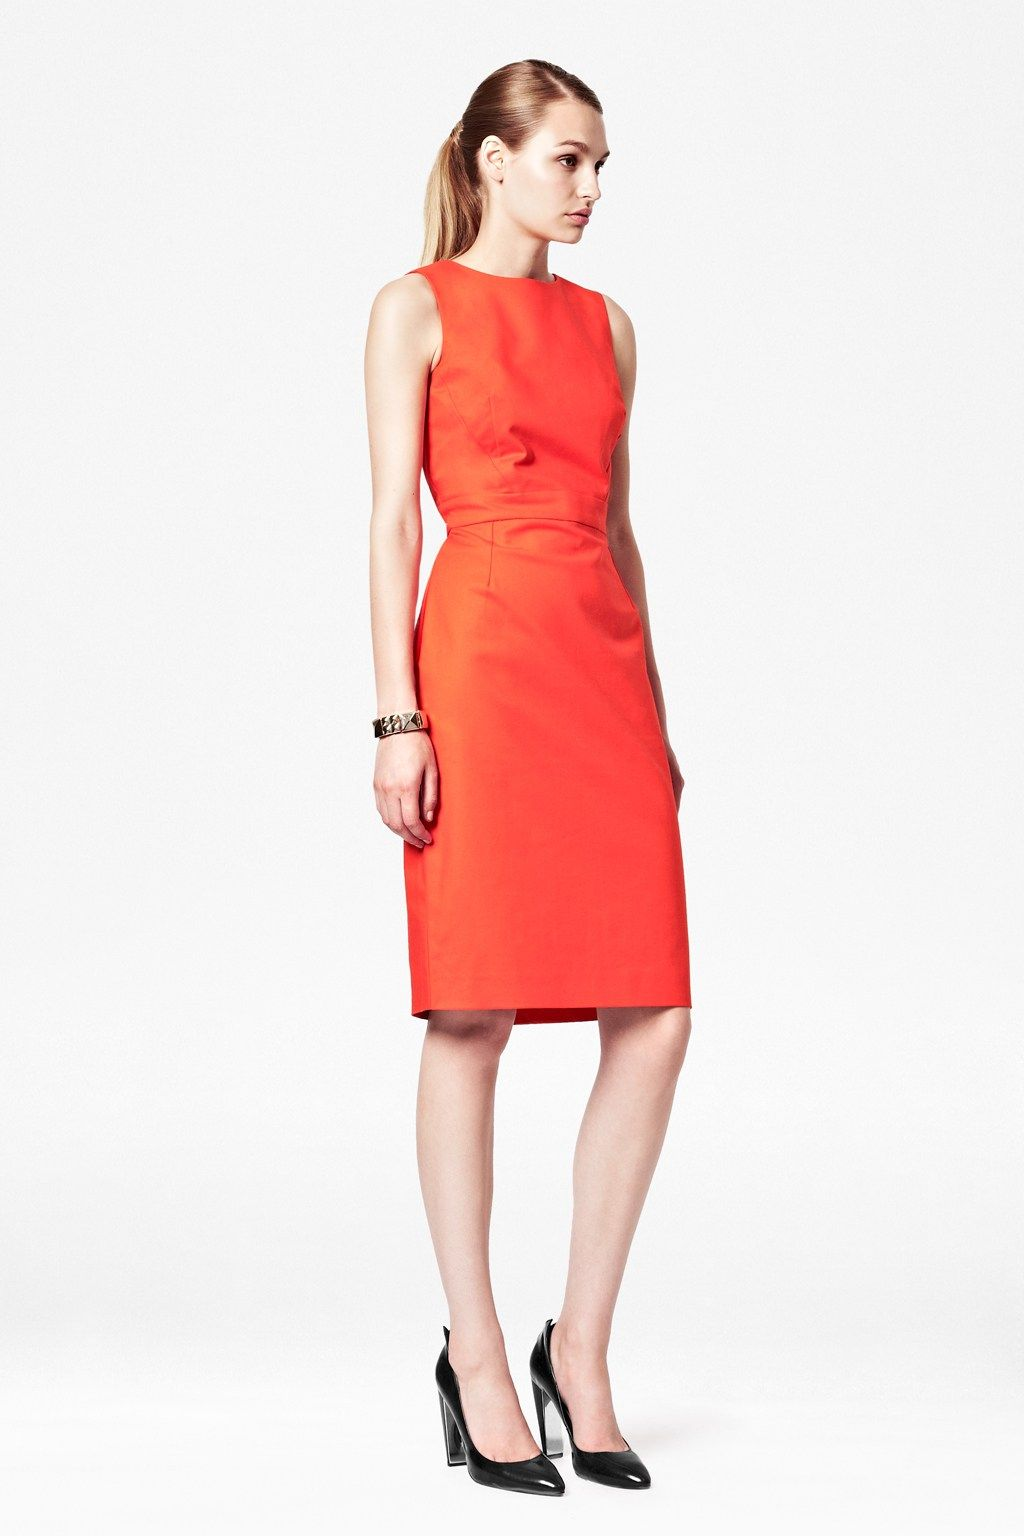 Tex Viva Fitted Dress - French Connection